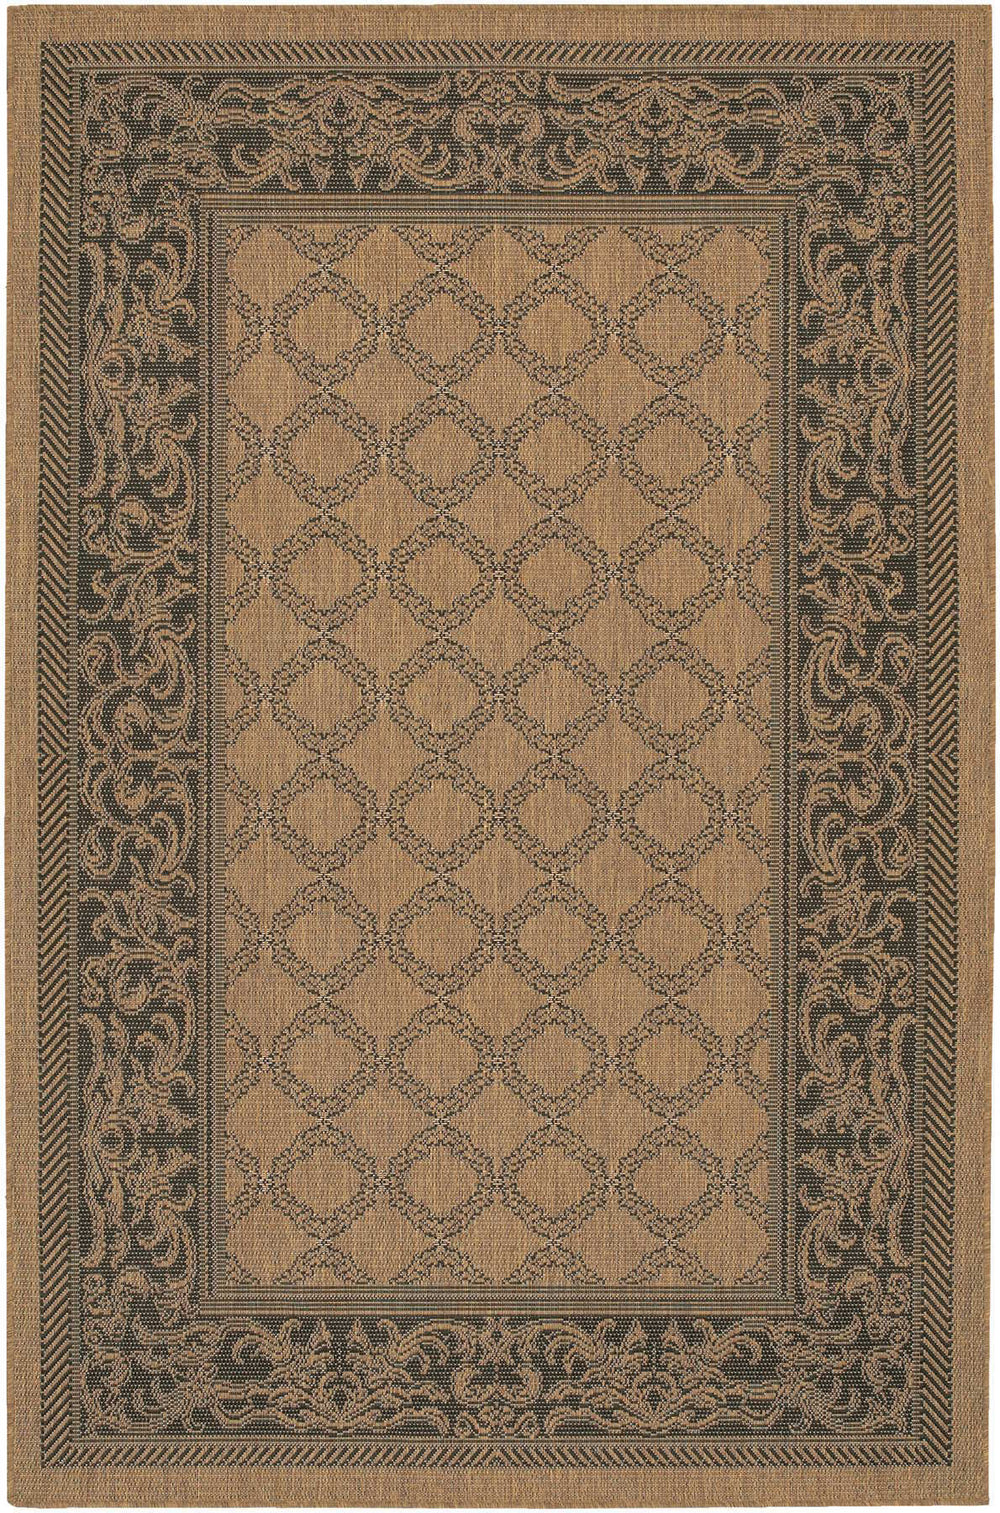 Couristan Recife Garden Lattice Area Rug